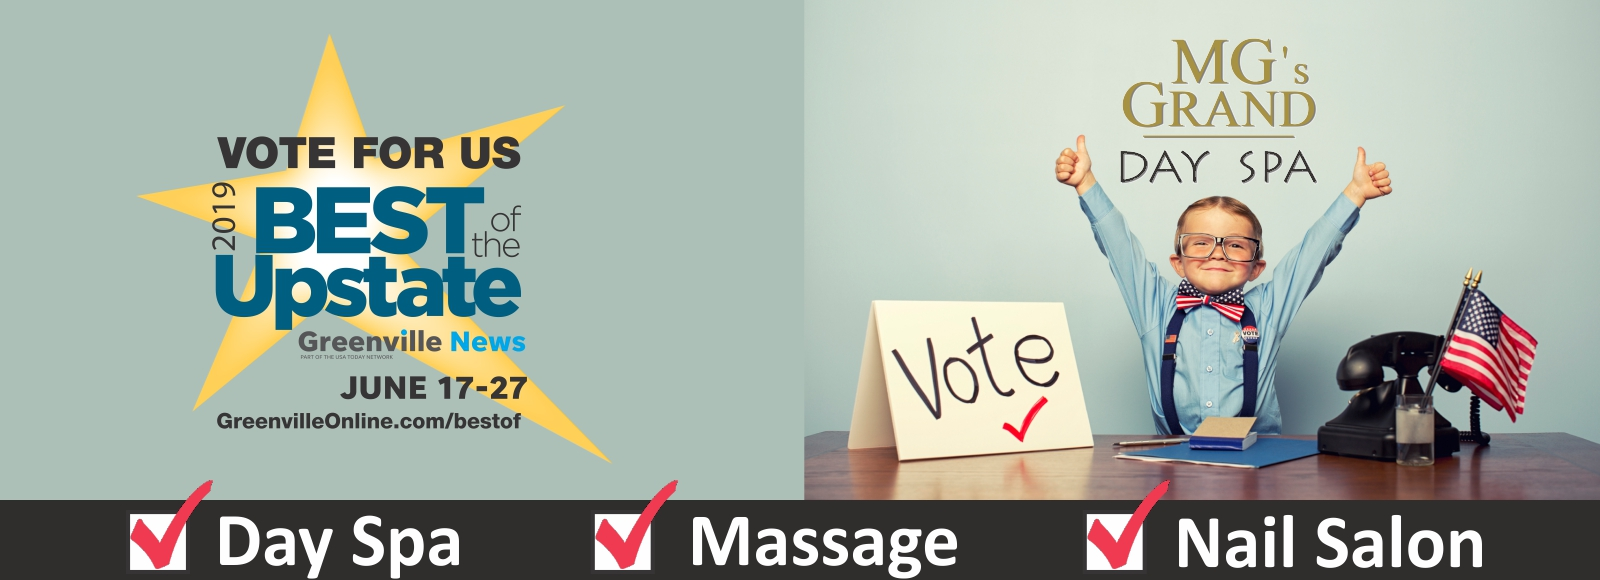 Vote MG's GRAND Day Spa Best of the Upstate